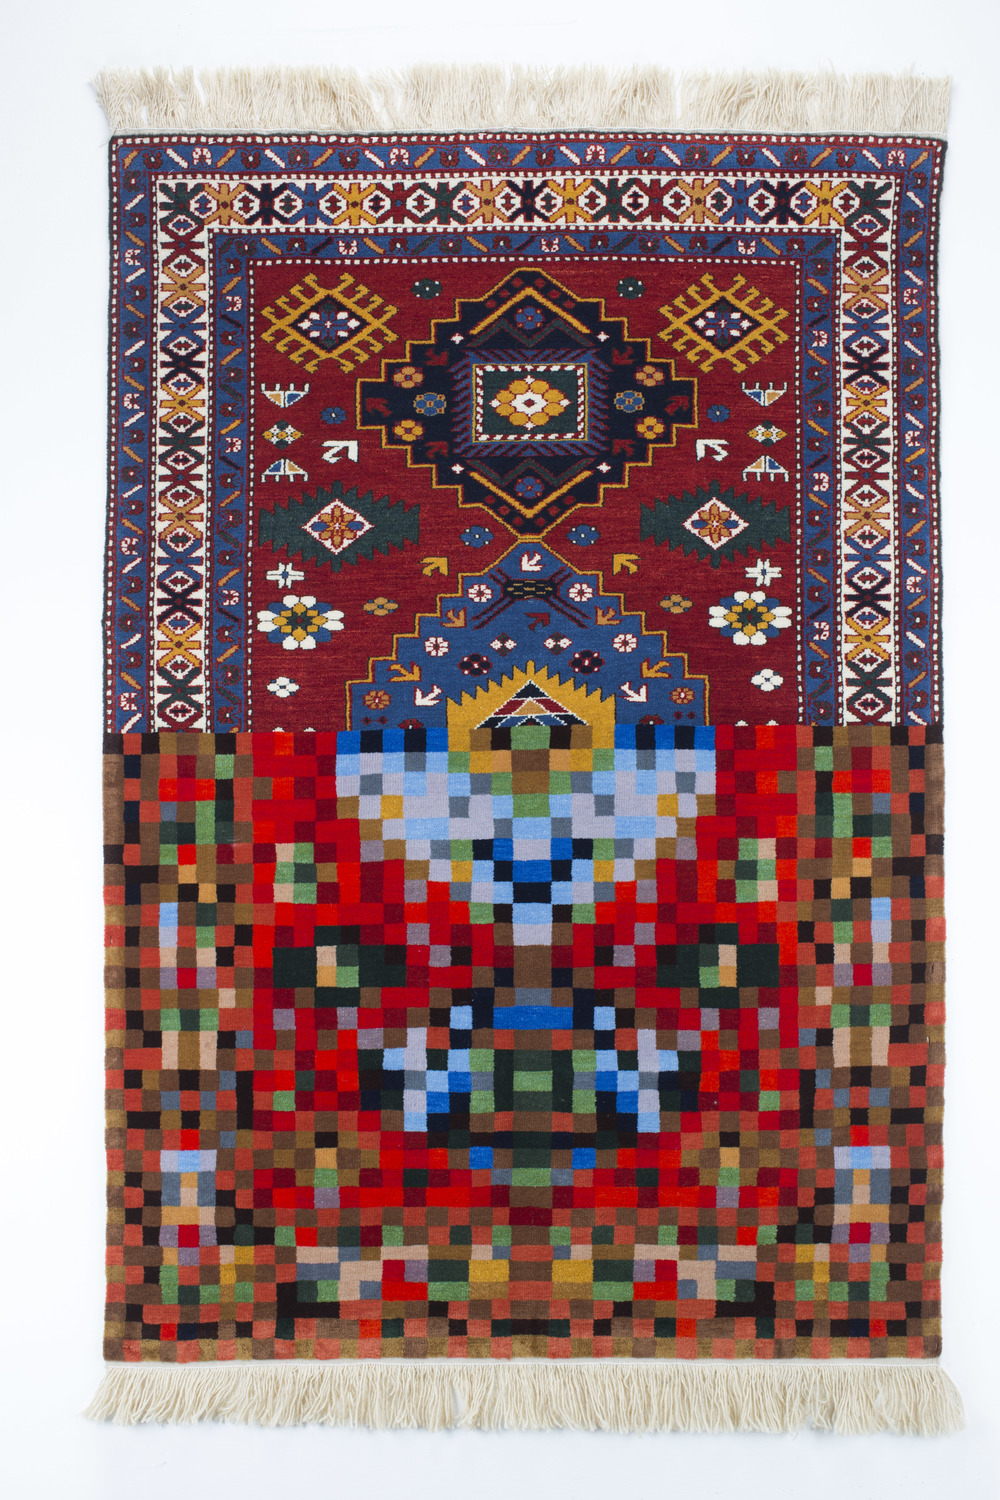 Tradition in Pixel. Faig Ahmed, 2010. Image Courtesy of Faig Ahmed Studio.  4,32 MB.jpg